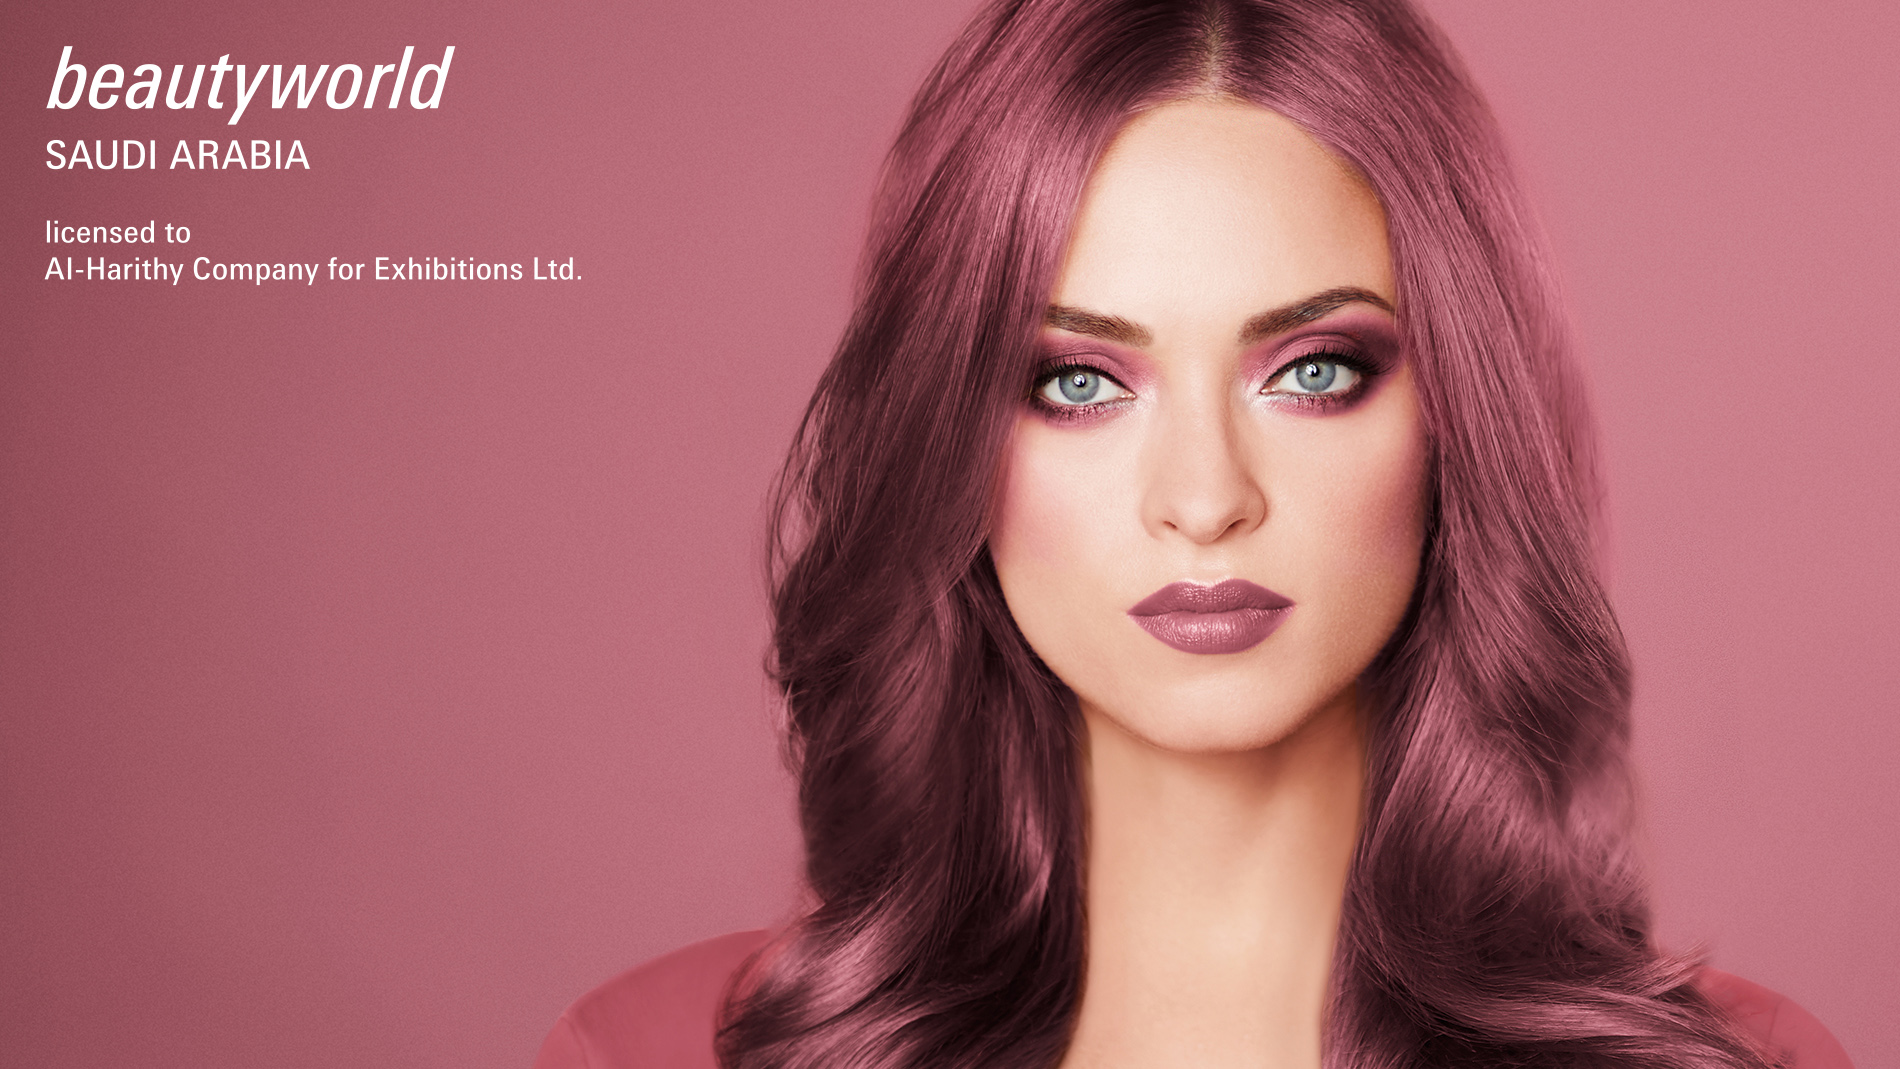 Beautyworld Saudi Arabia Keyvisual 2021